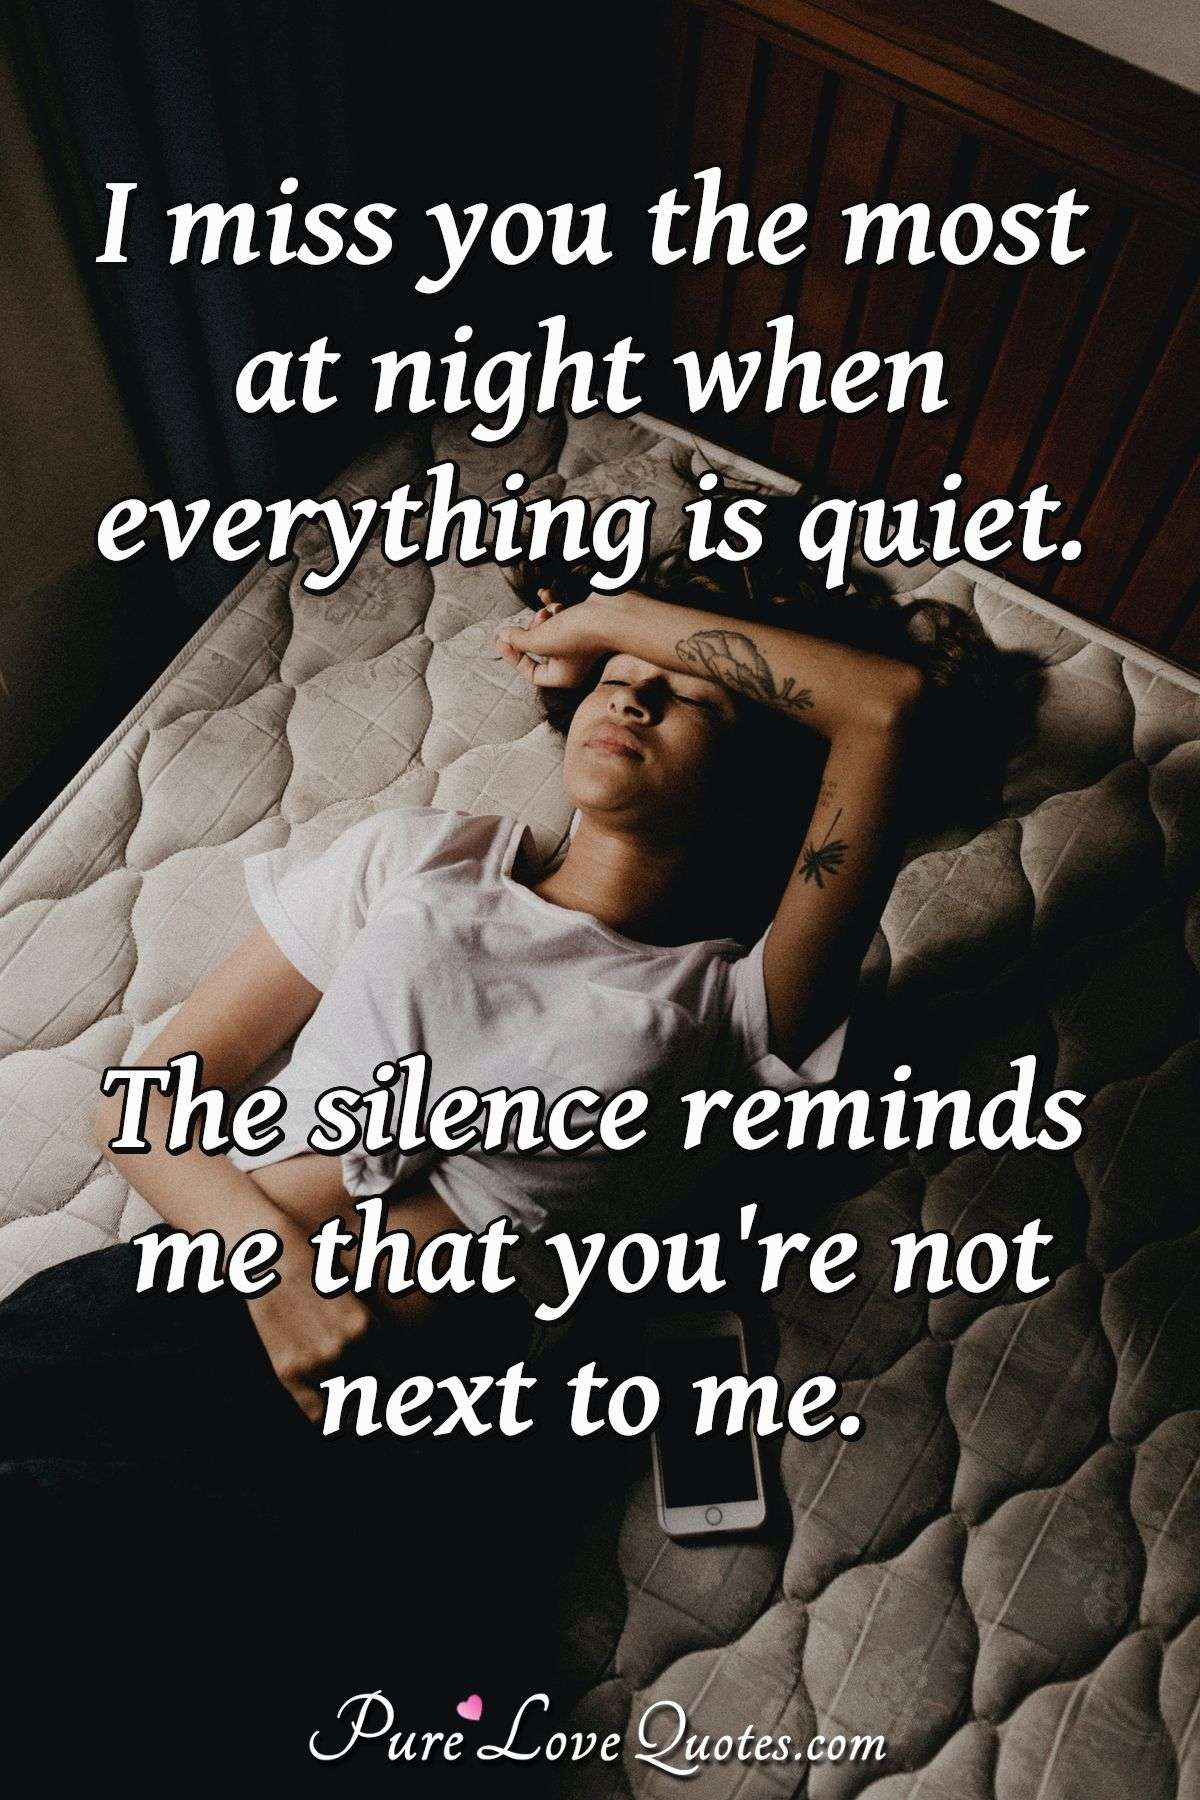 I miss you the most at night when everything is quiet. The silence